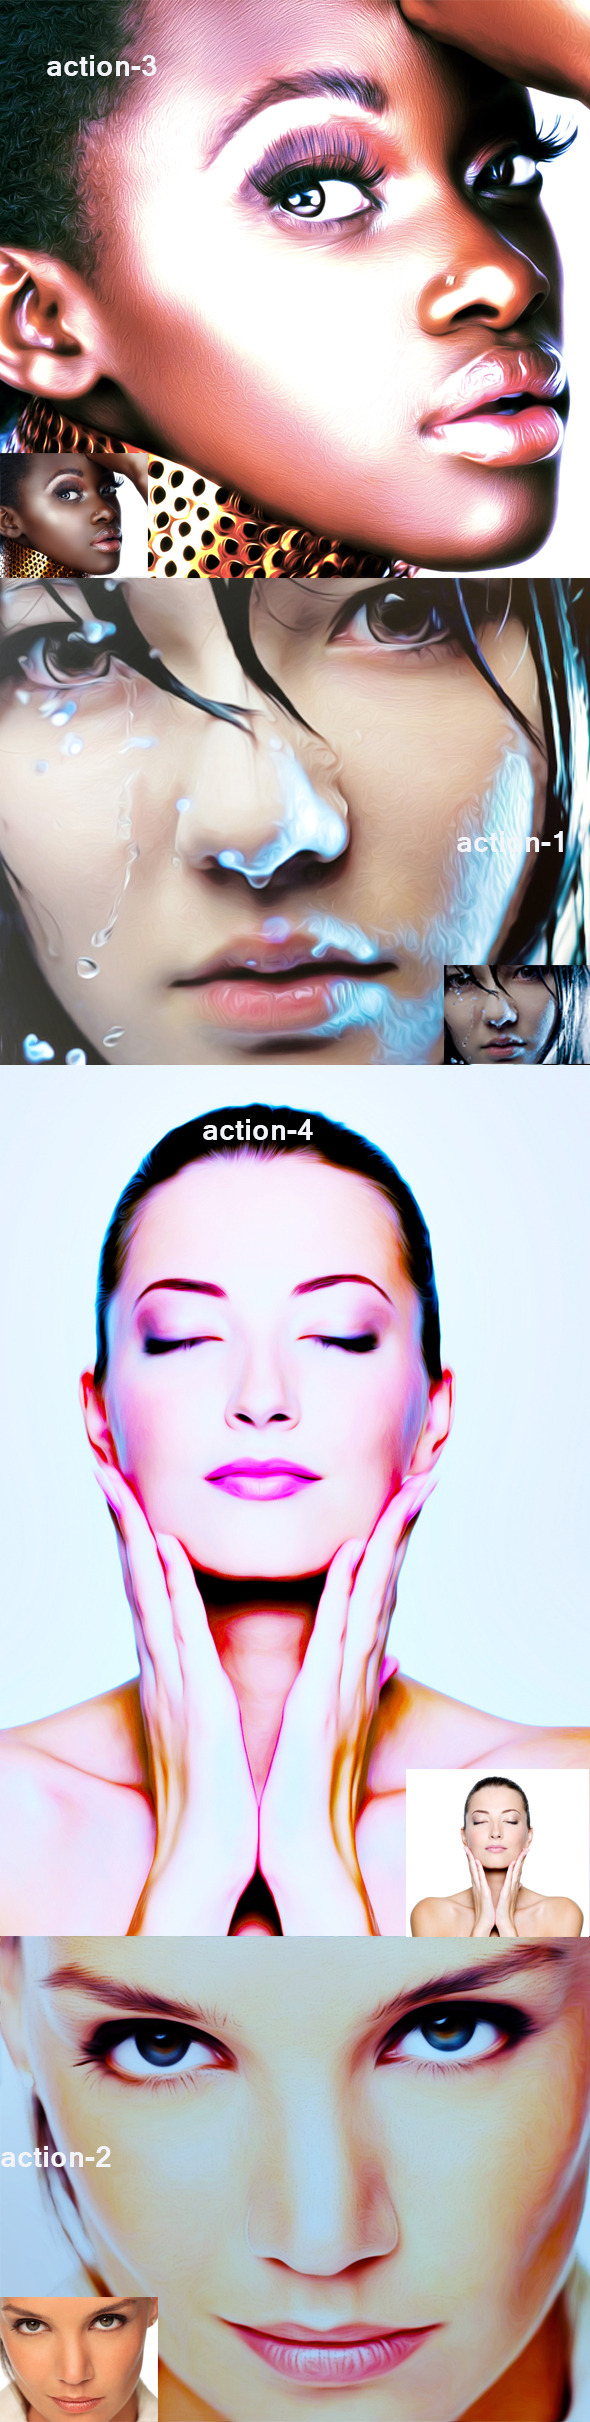 Oil Action 5 - Photo Effects Actions